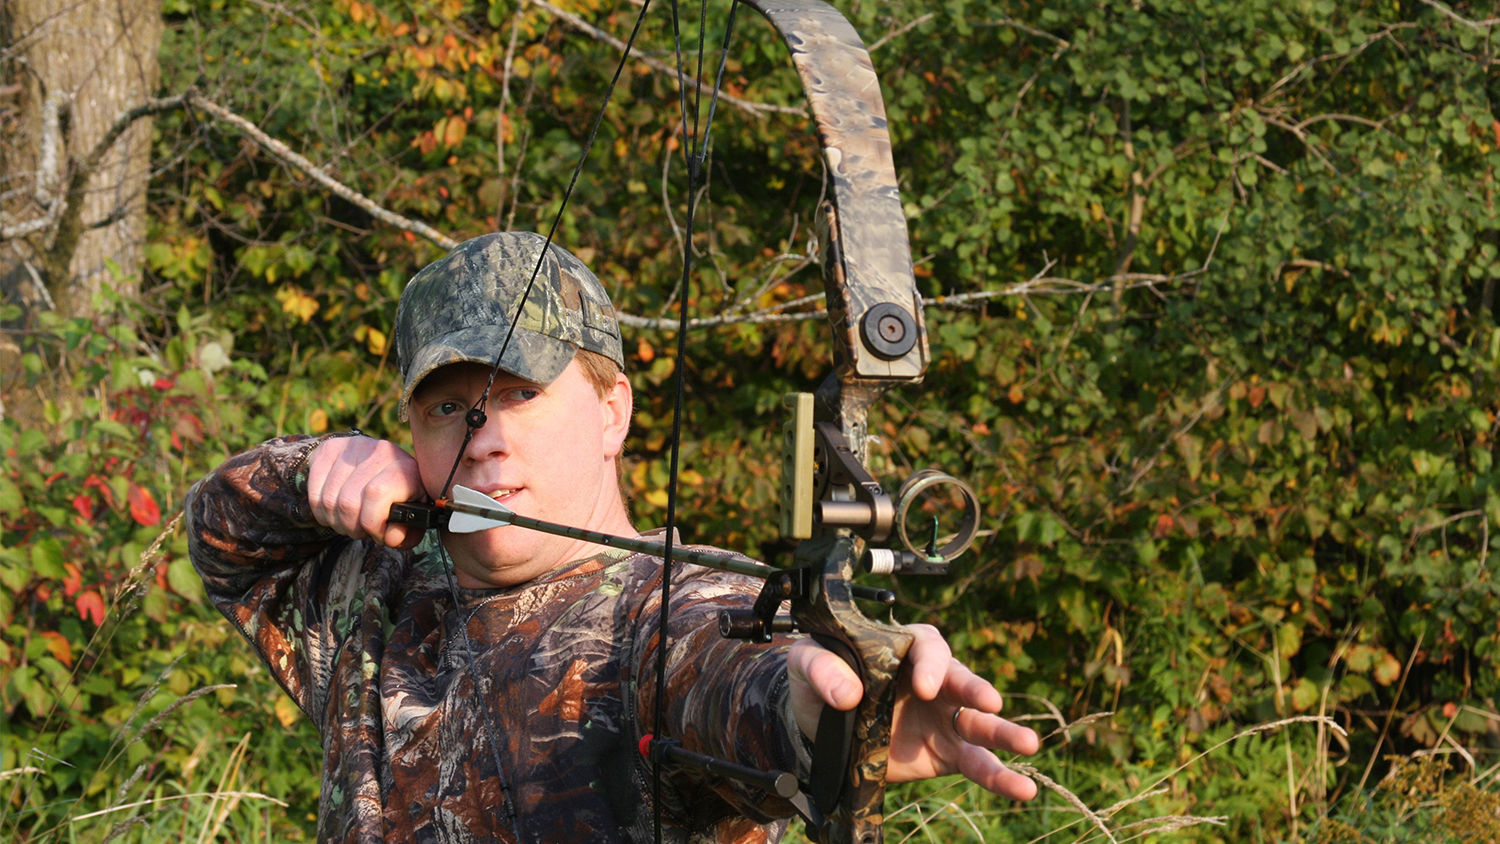 Register for the 2016 Youth Hunter Education Challenge National Championship